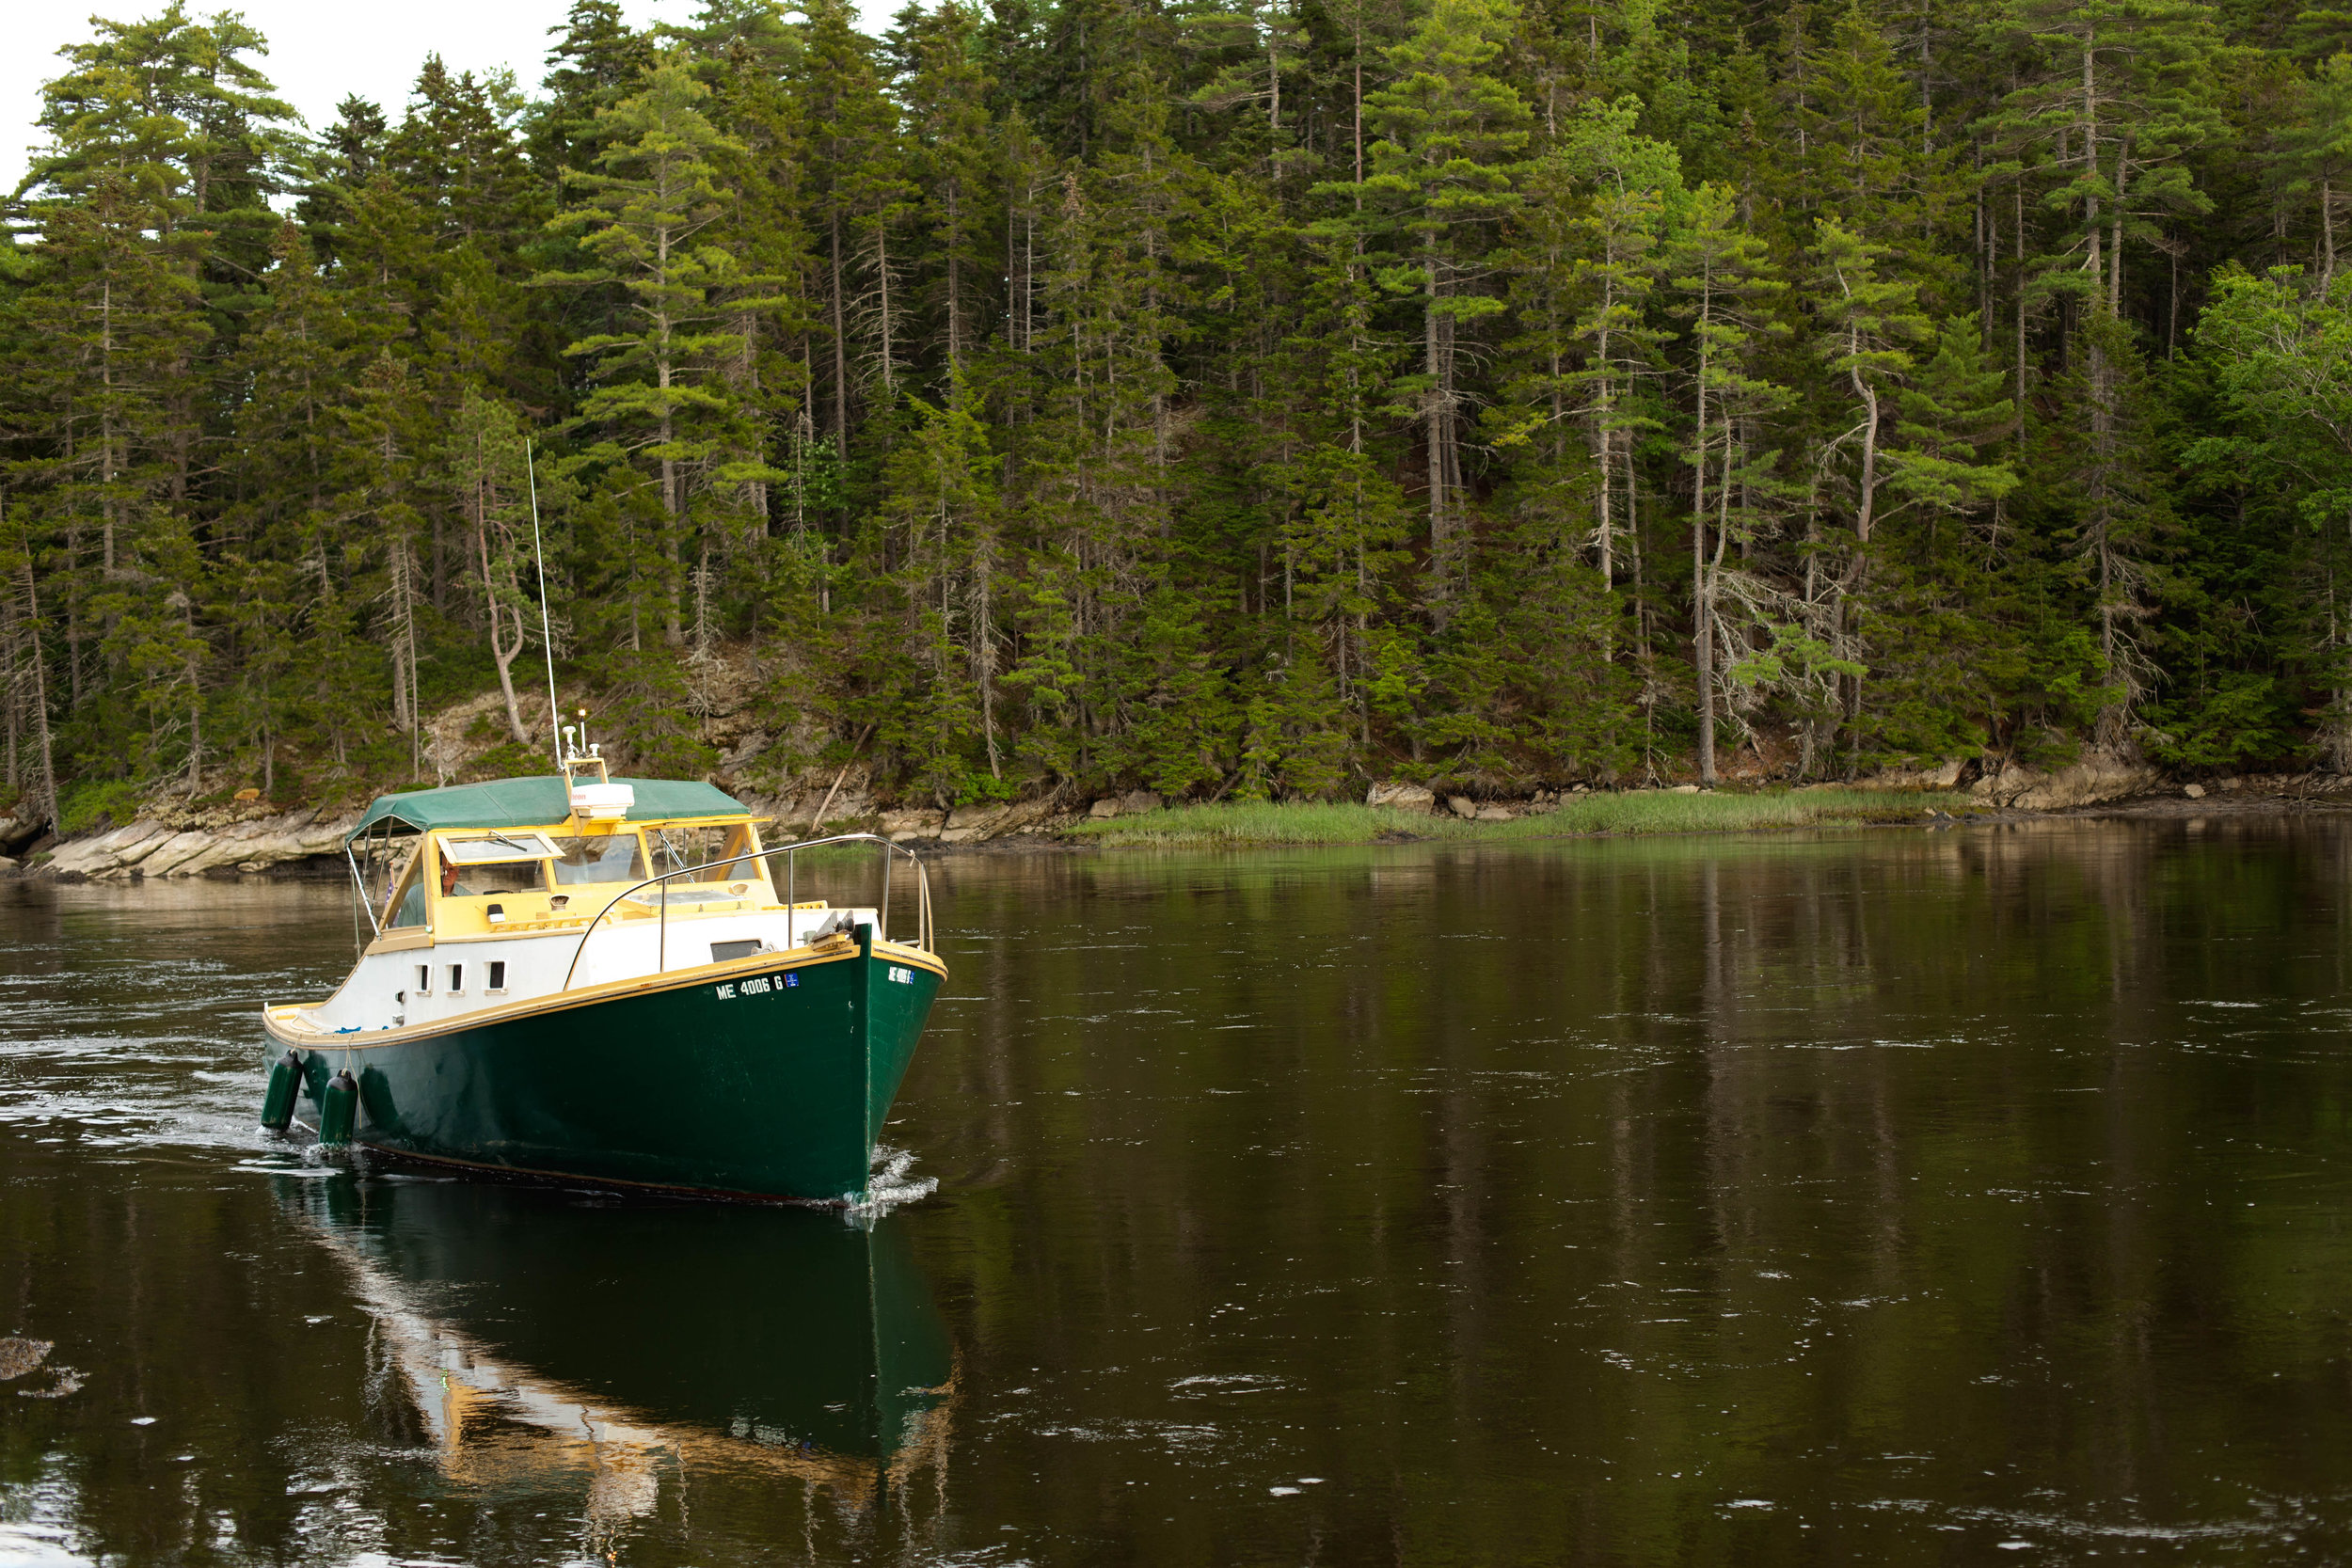 Coyote, our very own wooden lobster boat